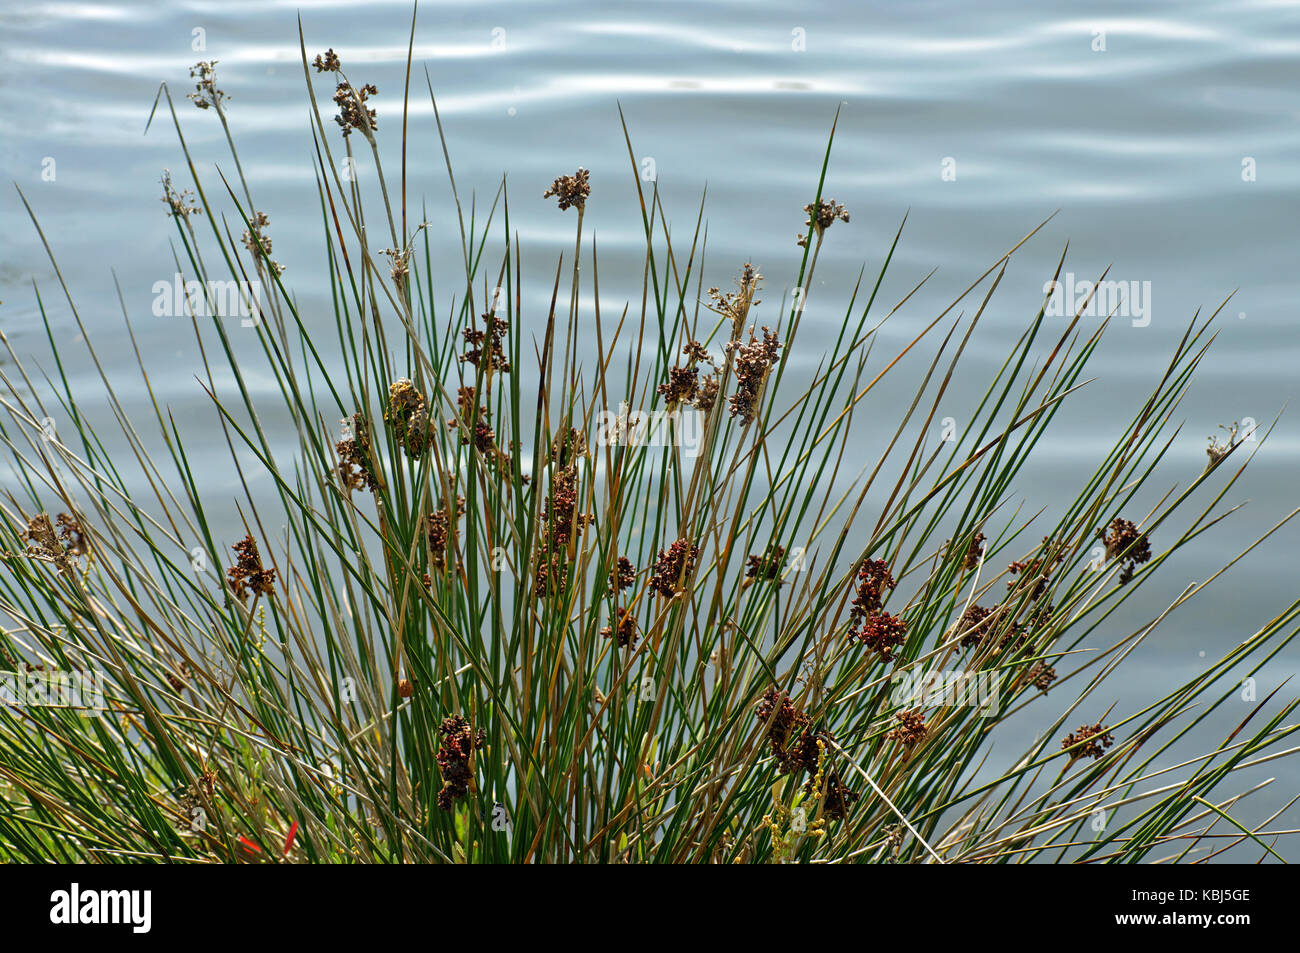 this is Juncus acutus, the Spiny rush, from the family Juncaceae - Stock Image